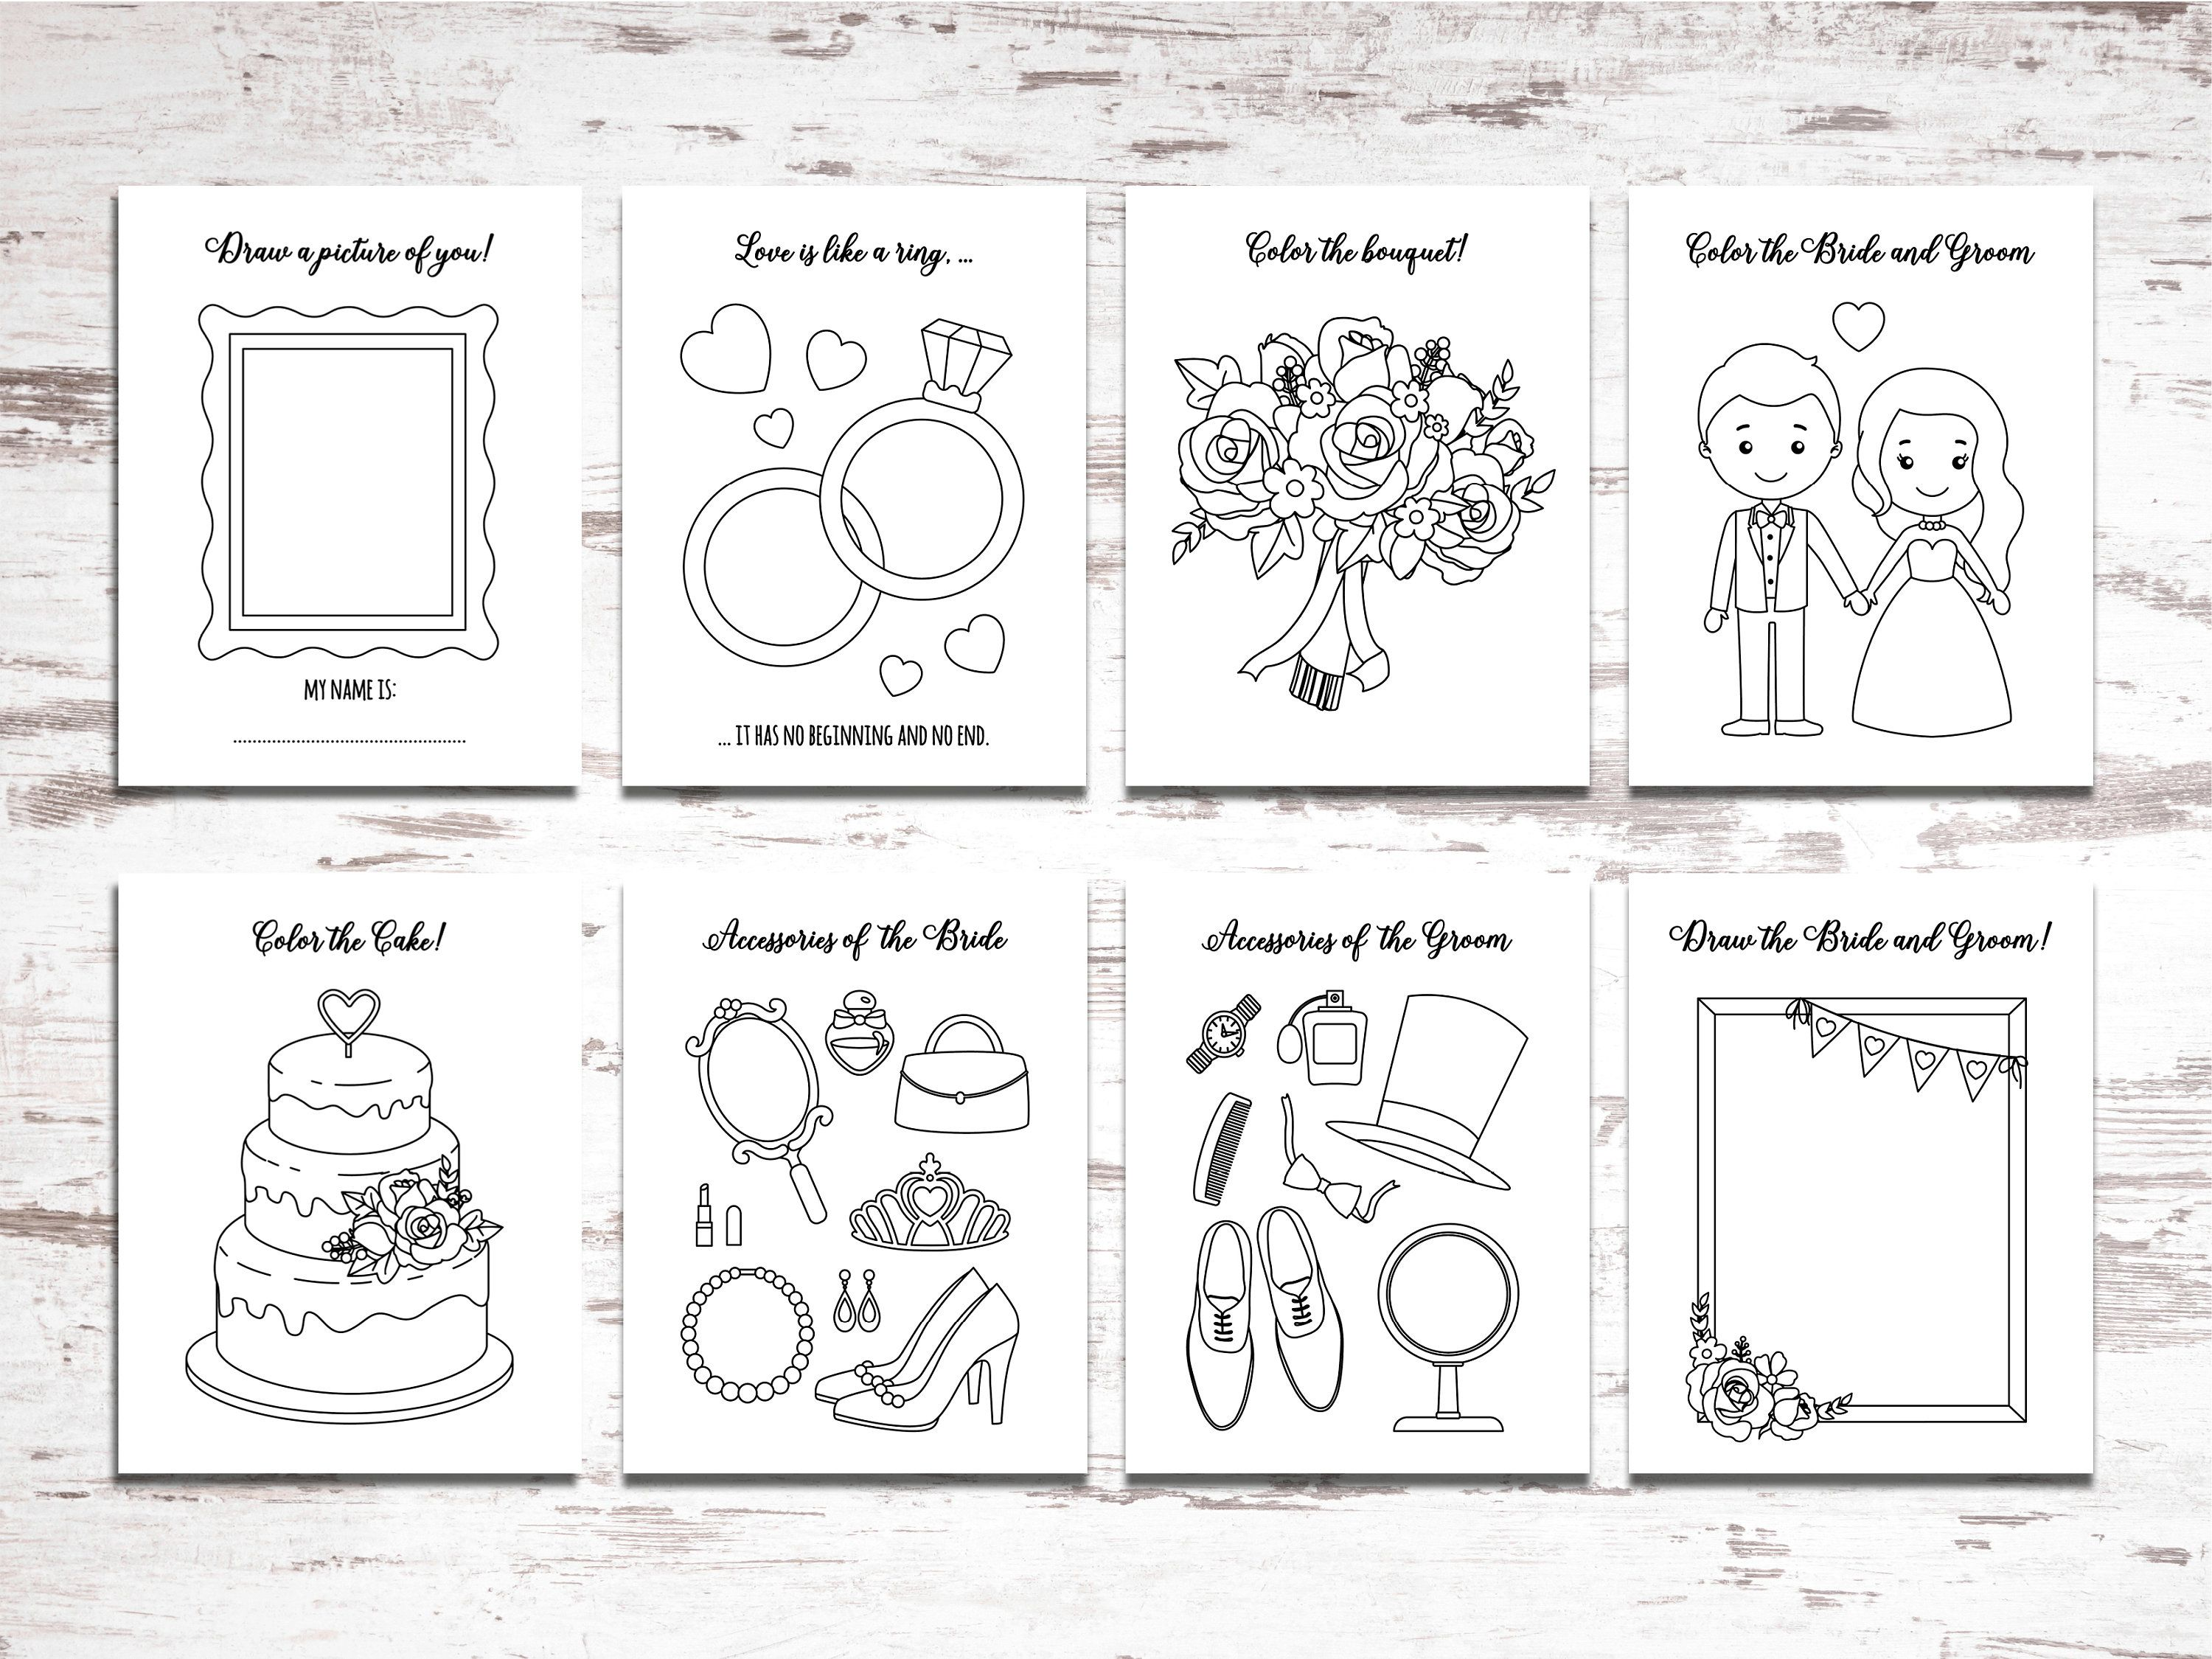 Printable Wedding Activity And Coloring Book Kids Table Sheets Printable Download Wedding Favors Reception Activities For Kids Coloring Books Printable Coloring Pages Kids Coloring Books